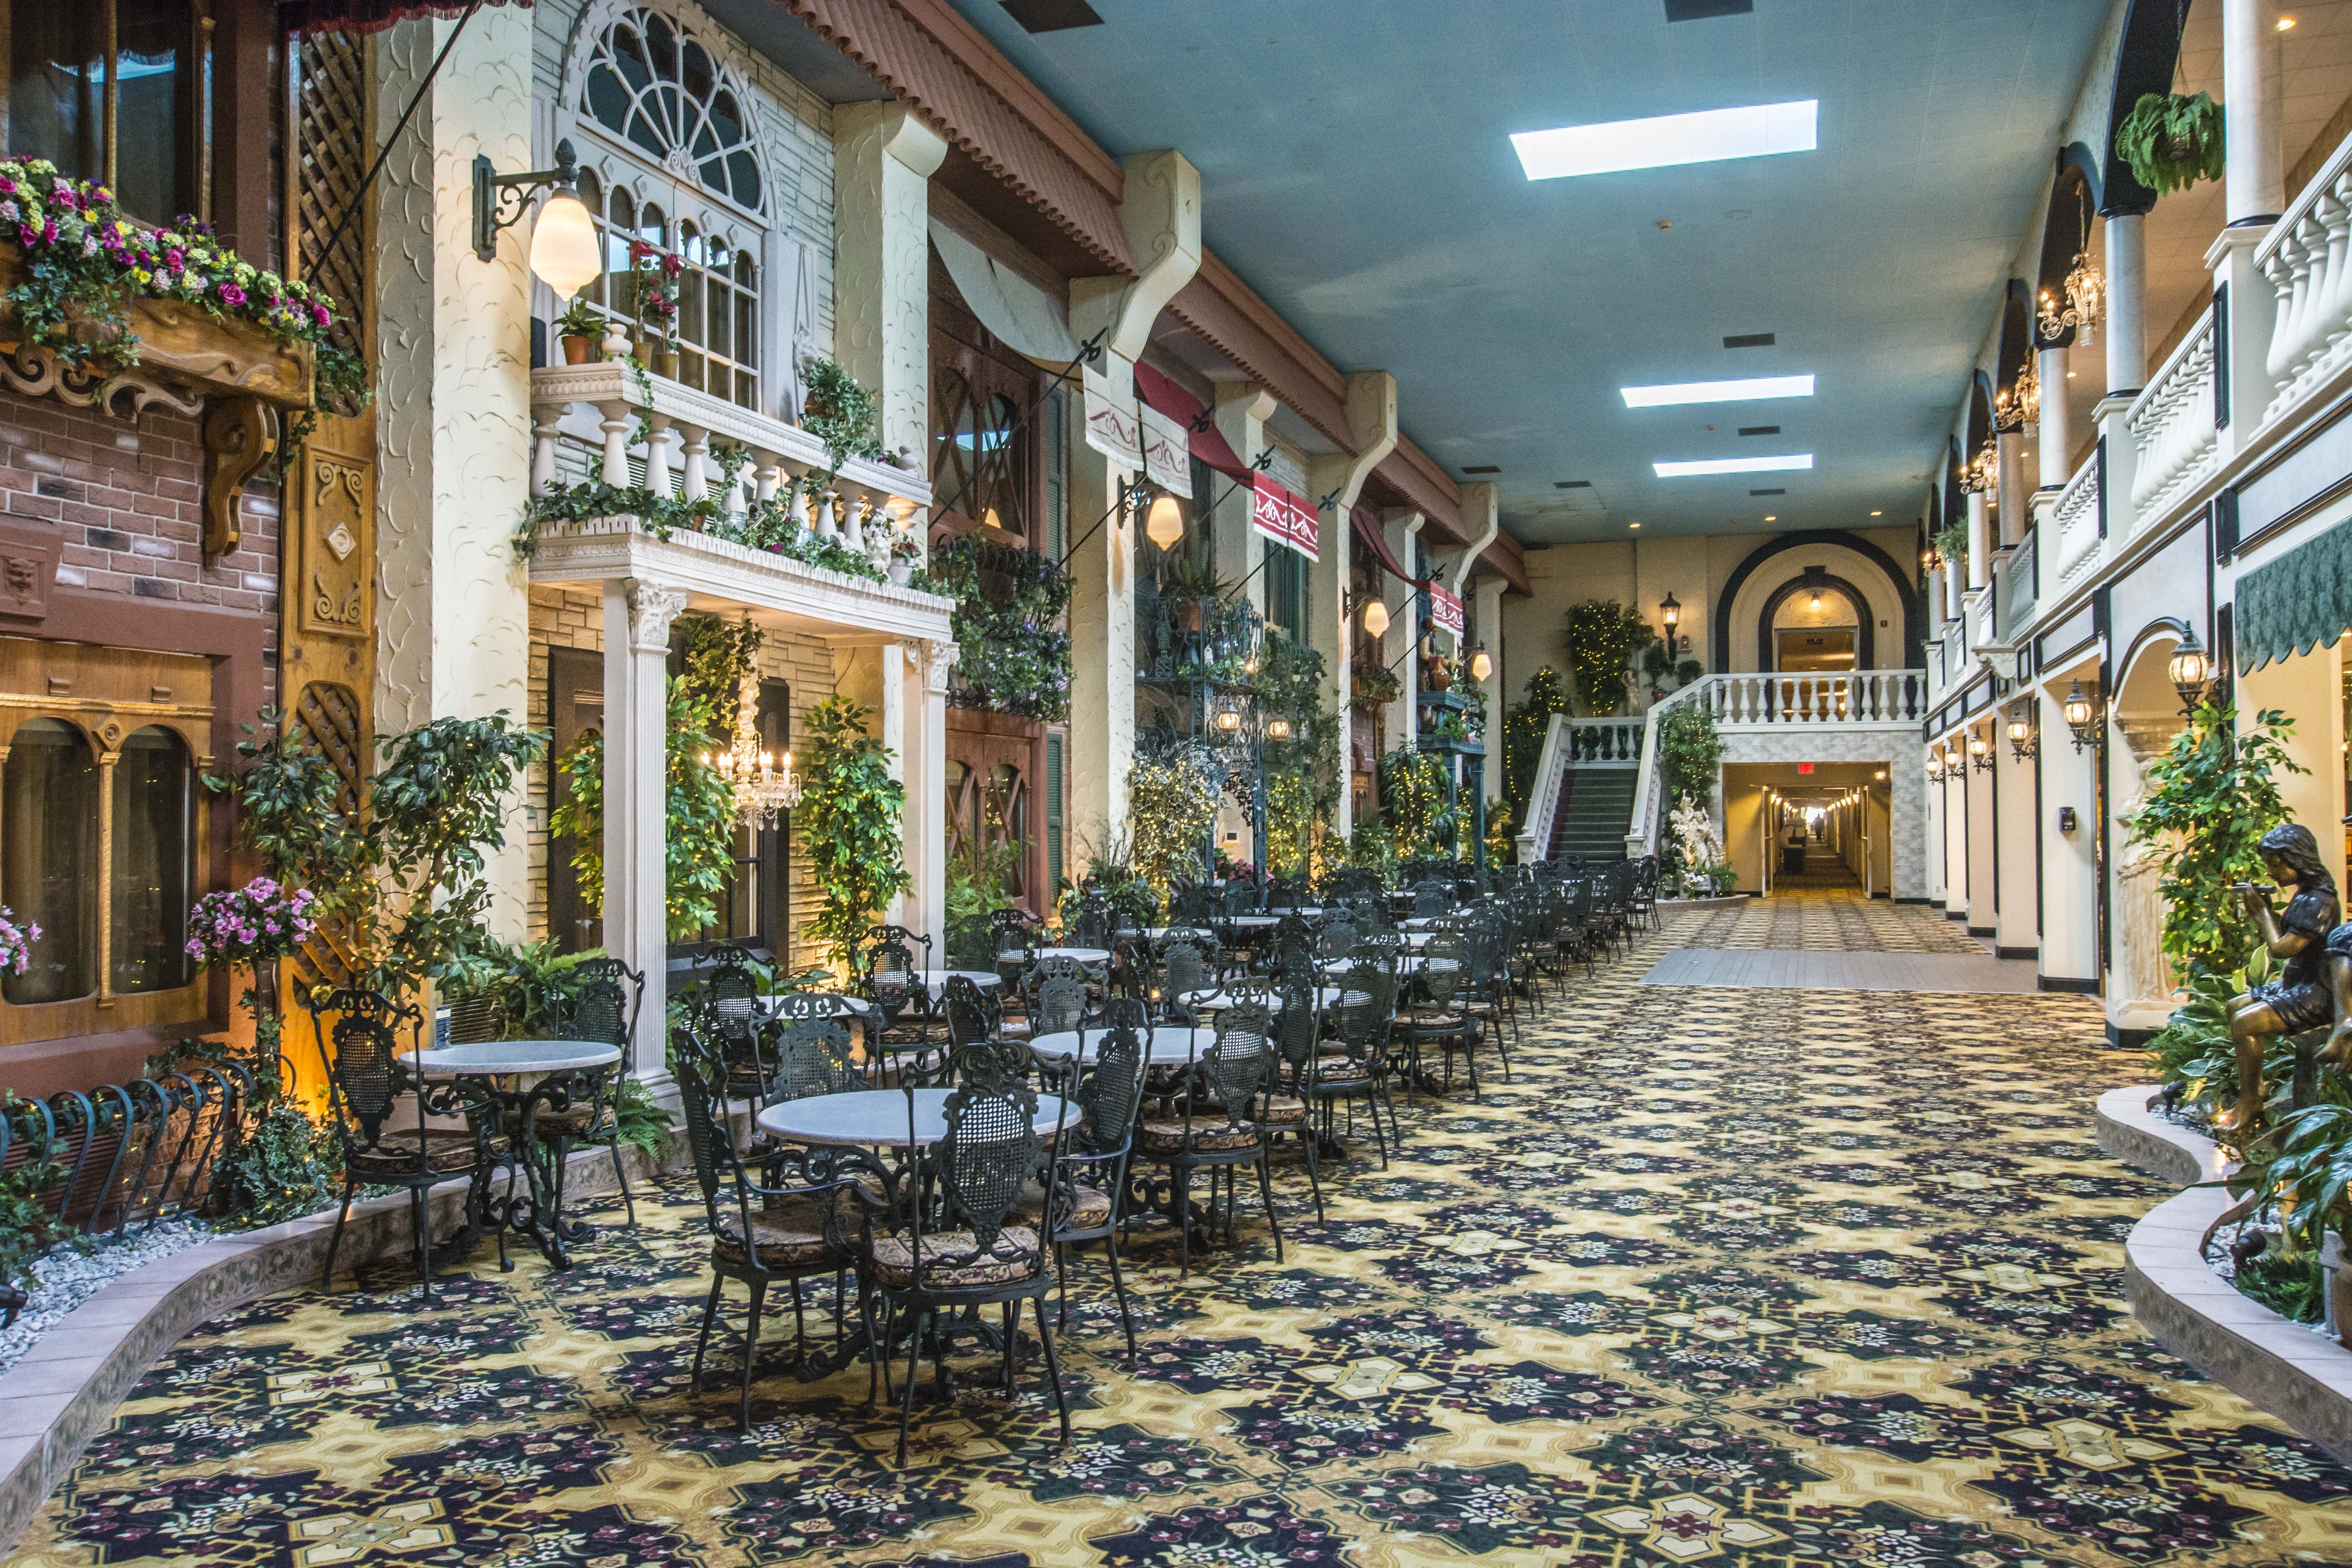 Getaway Packages The Garden Place Hotel